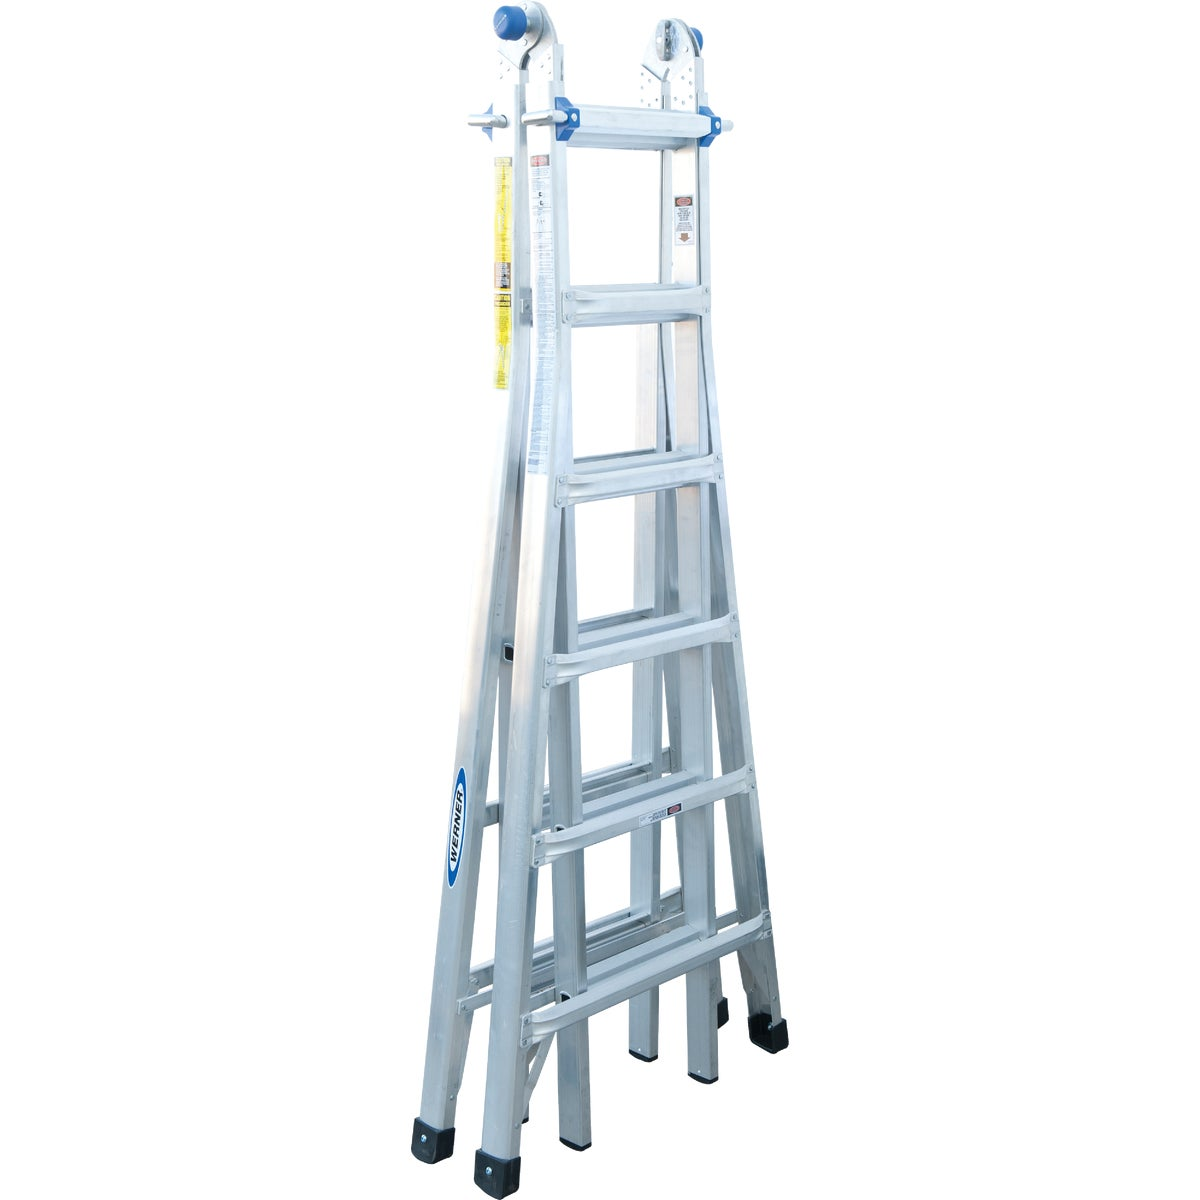 26' ALUM TELSCOPE LADDER